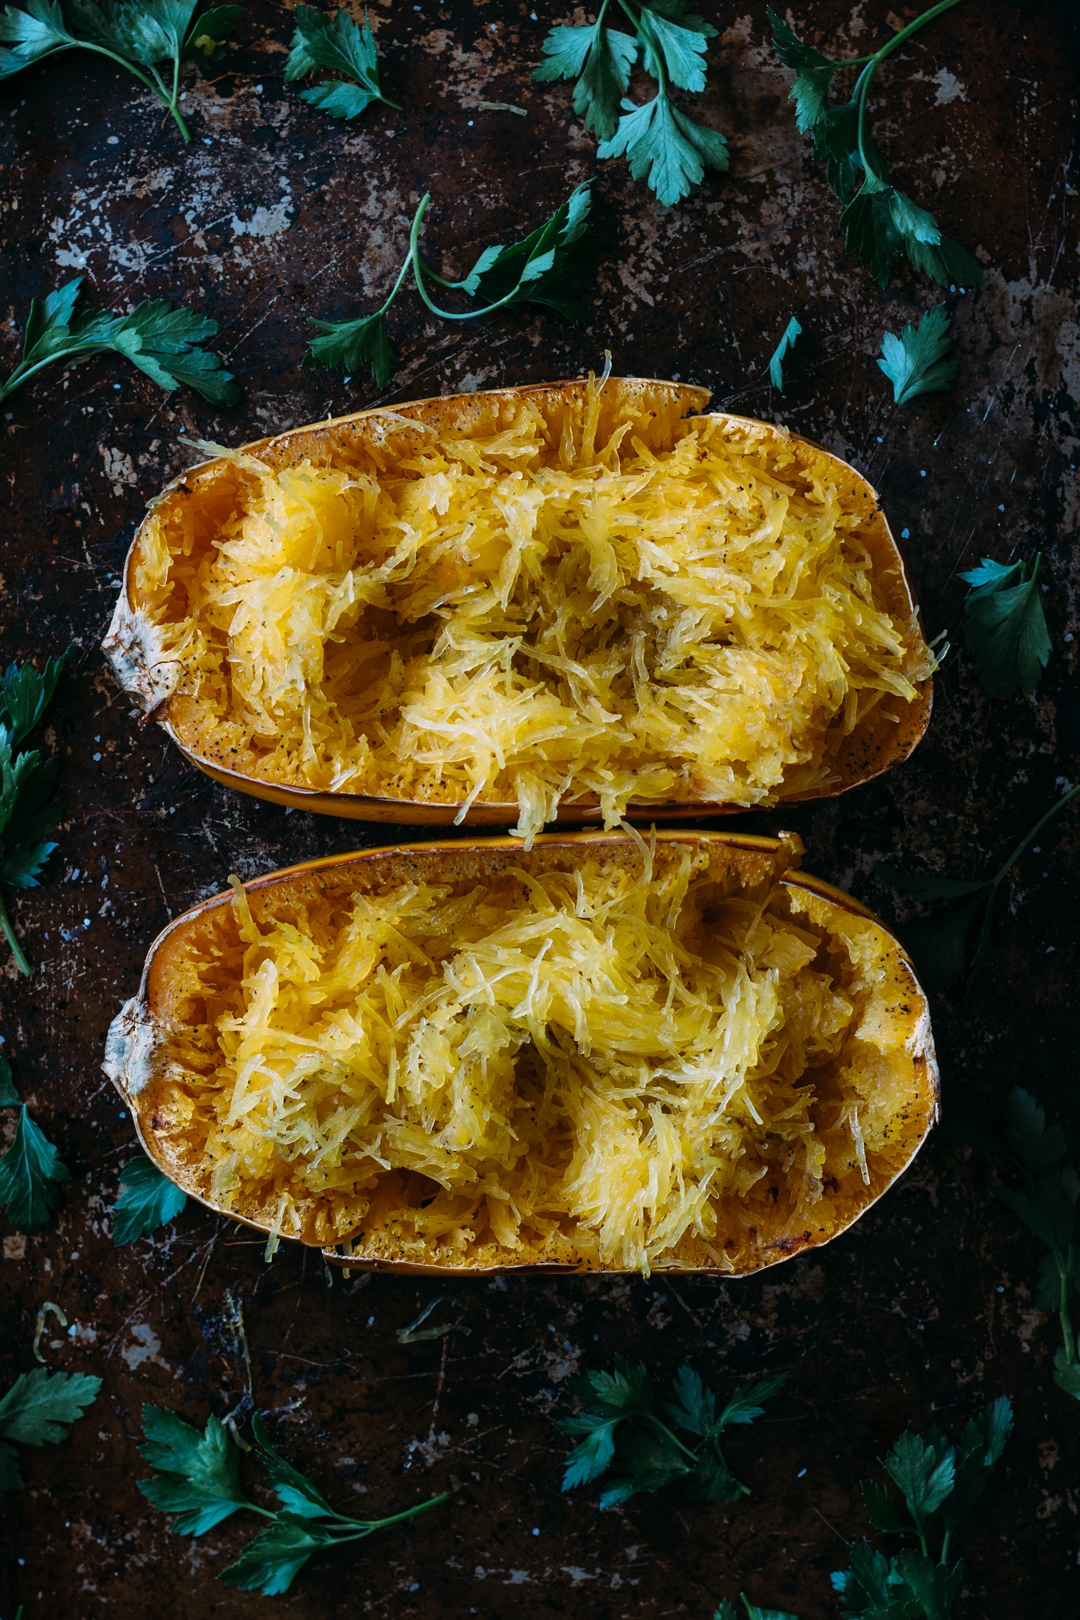 Overhead shot of two baked and tossed spaghetti squash halves on a baking sheet surrounded by parsley